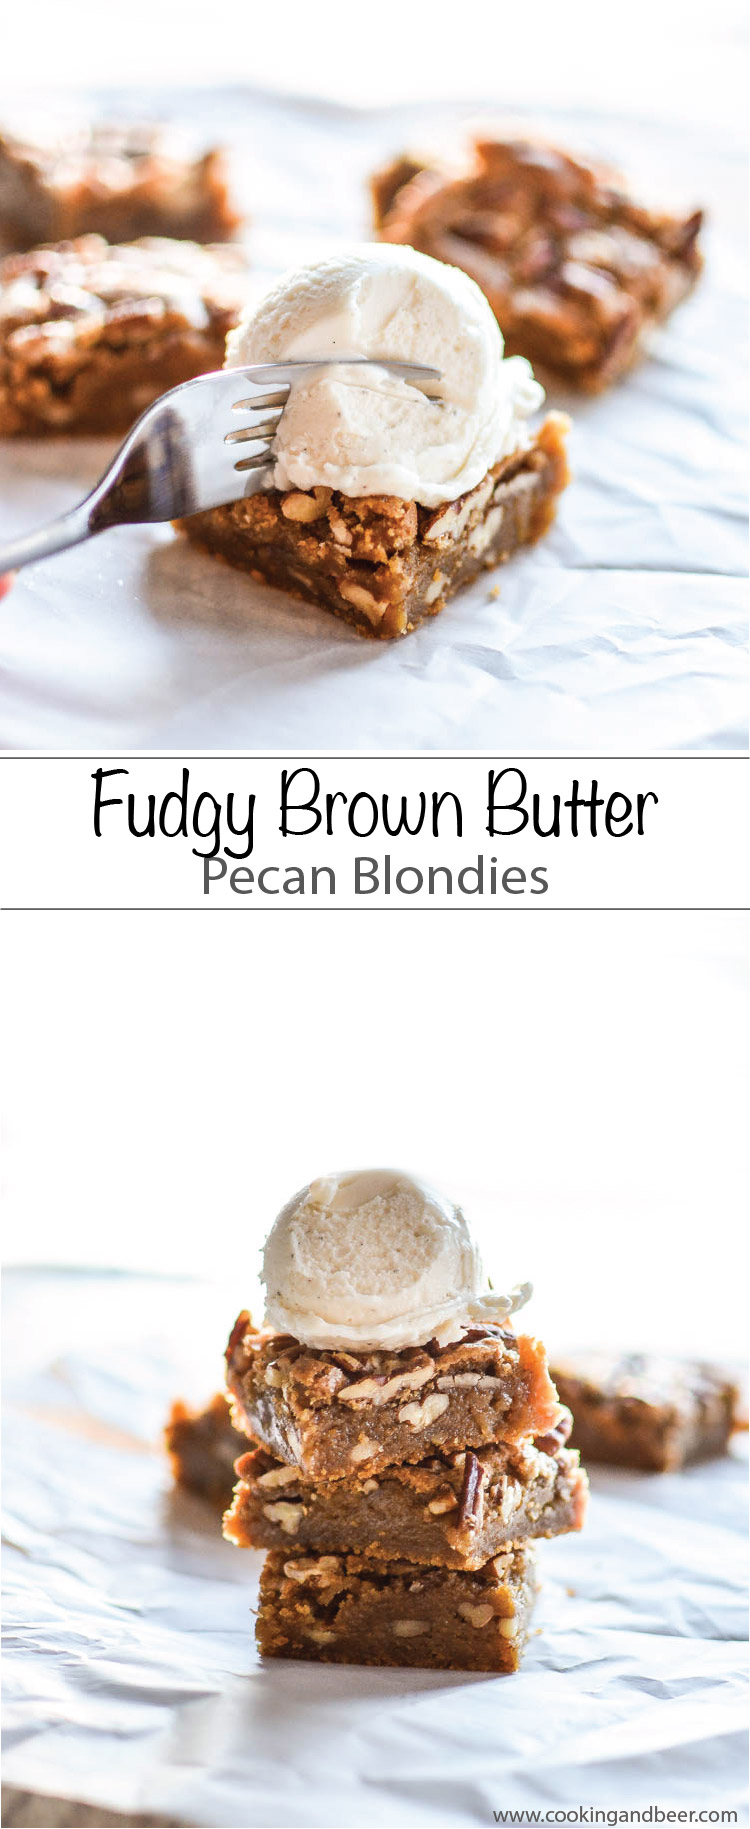 The perfect dessert: These Fudgy Brown Butter Pecan Blondies are the perfect sweet treat!  | www.cookingandbeer.com